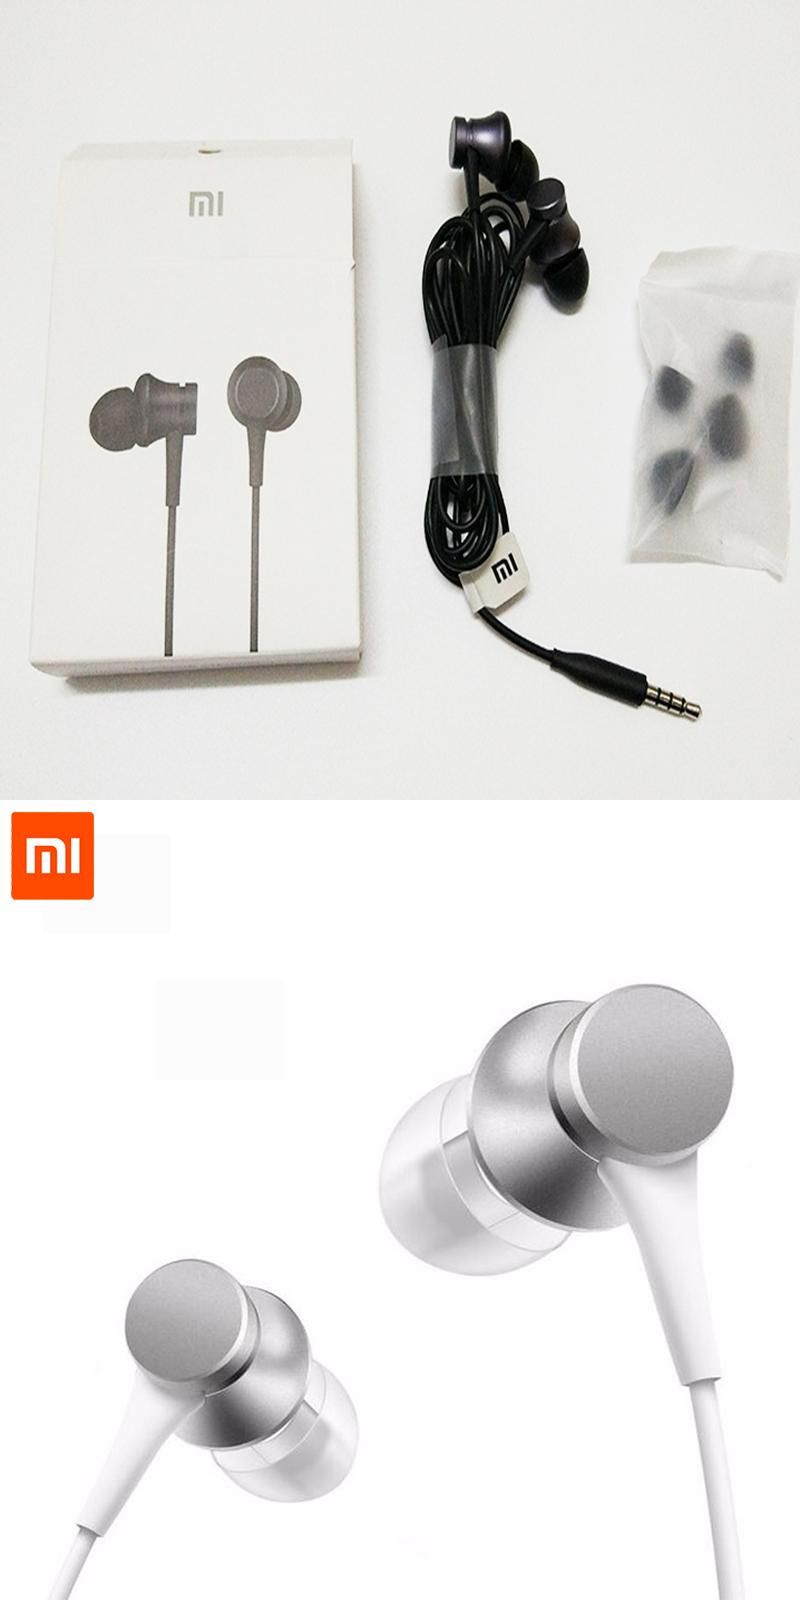 Newest Original Xiaomi Piston 3 Fresh Edition Earphone With Mic New Mi Basic Version In Ear Headset Remote For Redmi Red